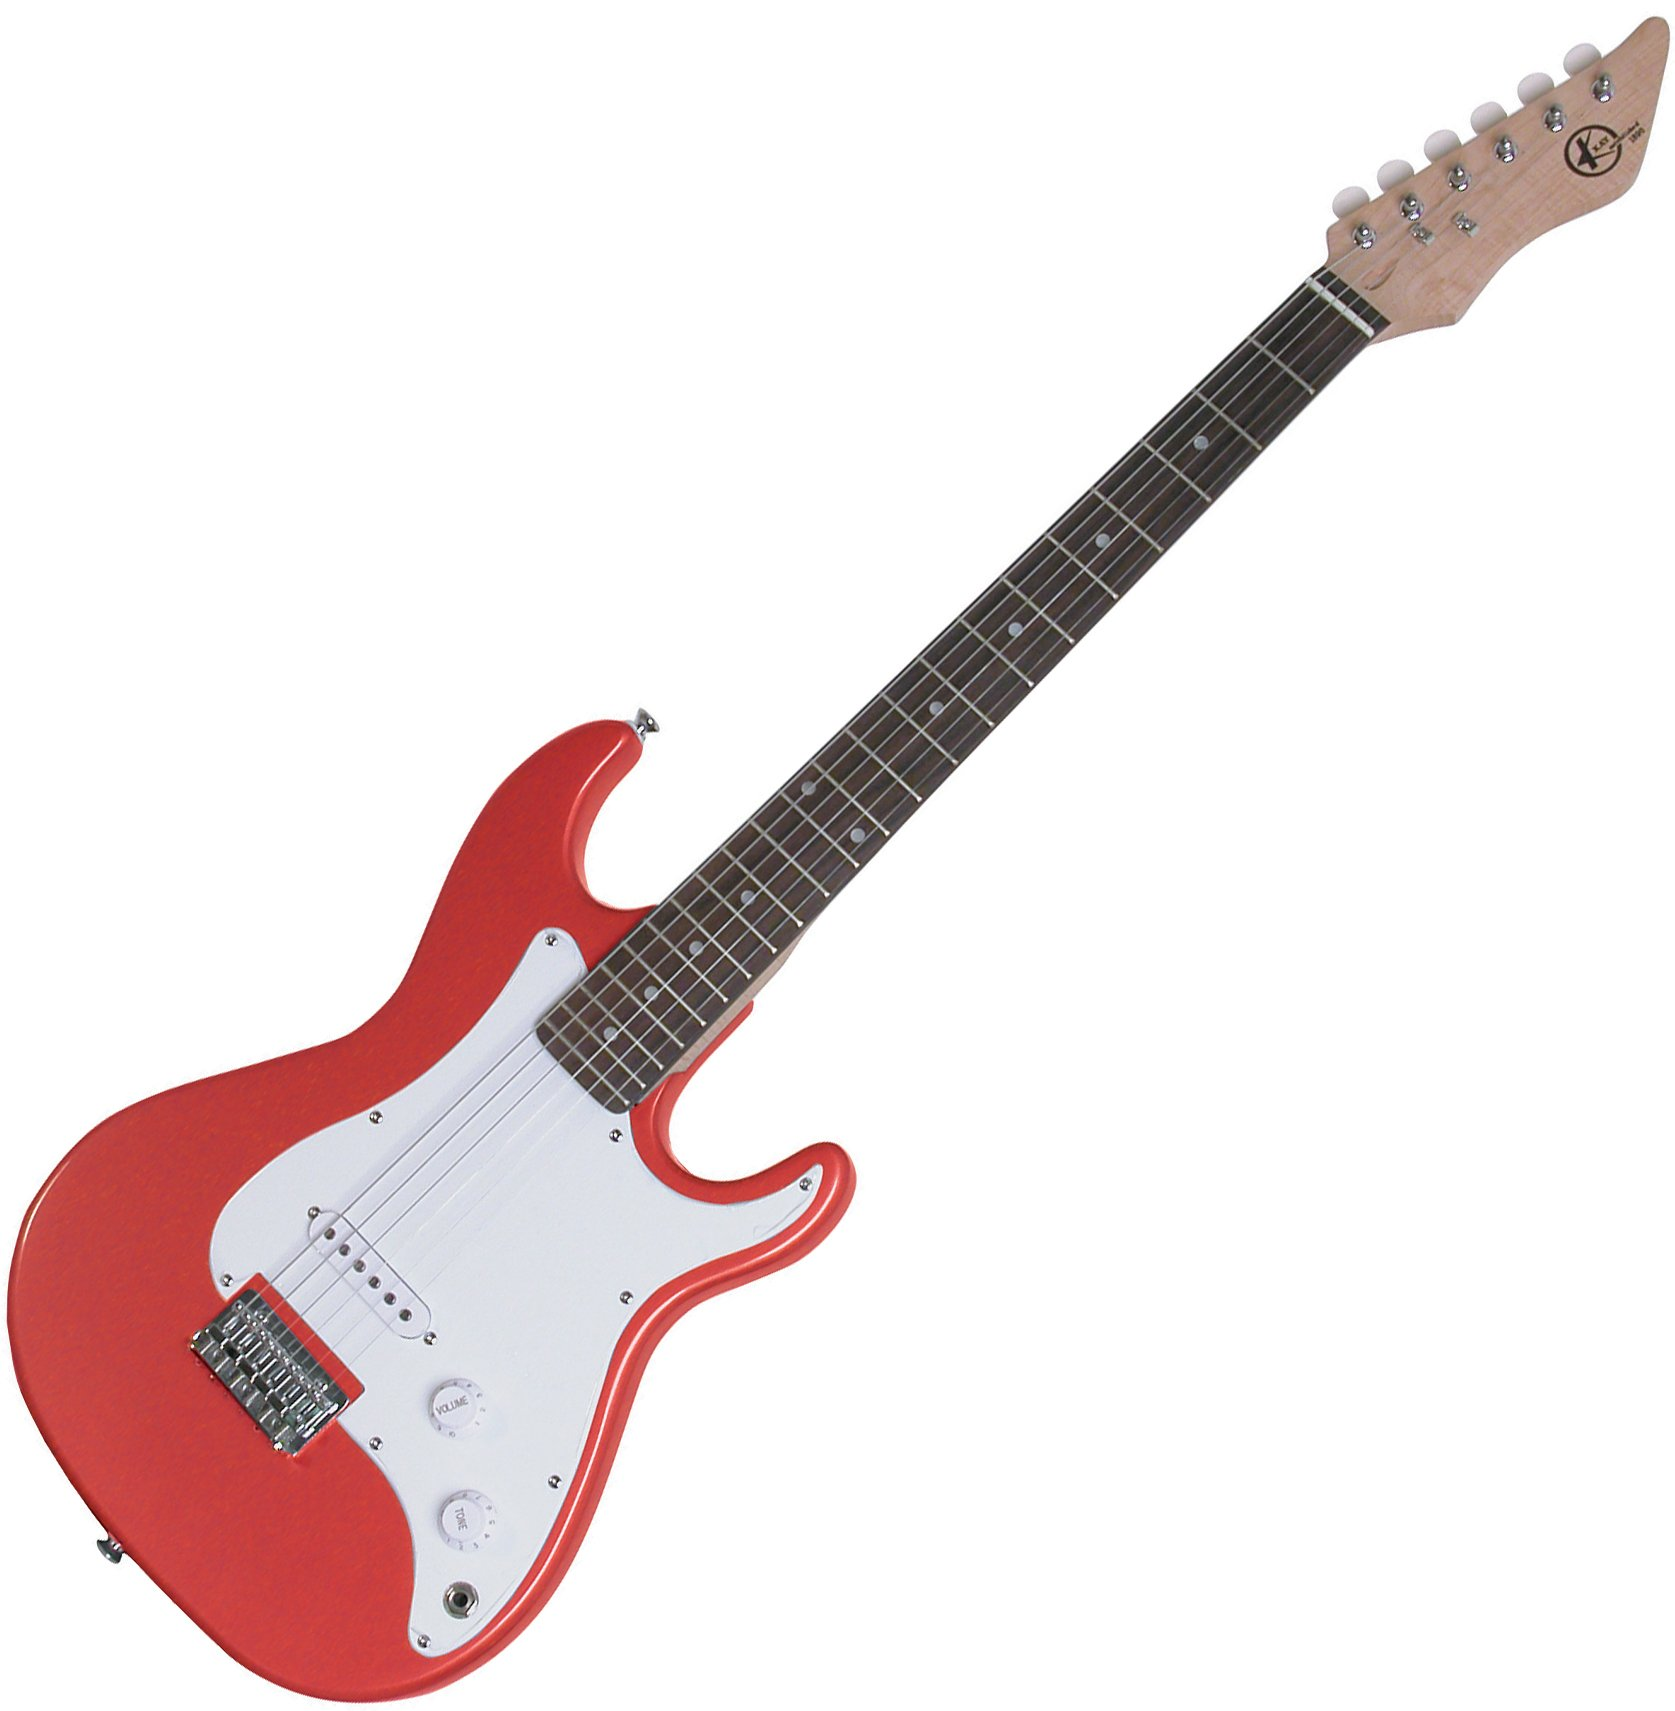 Cheap Kay KE17MR 7/8 Solid Body Full Scale Neck Electric Guitar Red Black Friday & Cyber Monday 2019